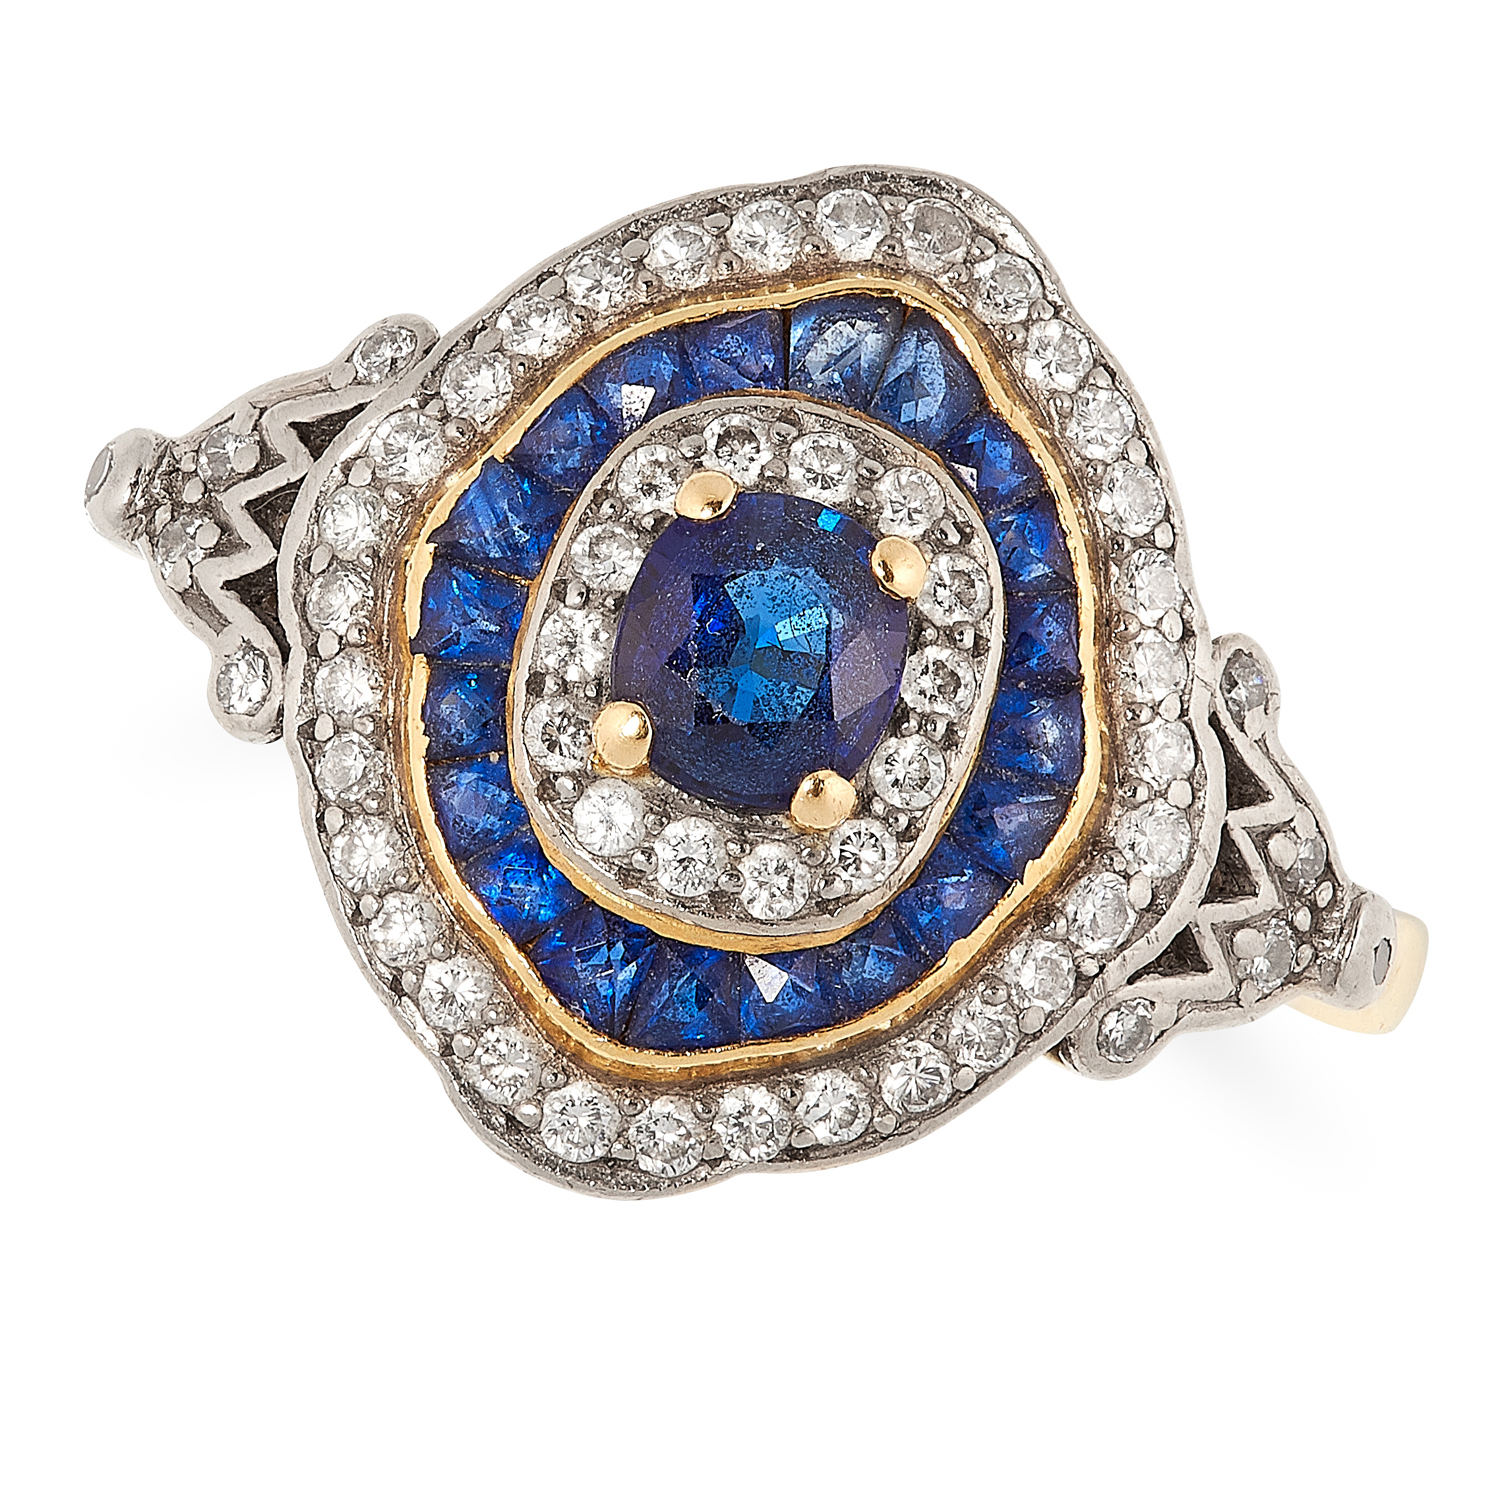 A SAPPHIRE AND DIAMOND TARGET RING, CIRCA 1950 in 18ct yellow gold, set with an oval cut sapphire in